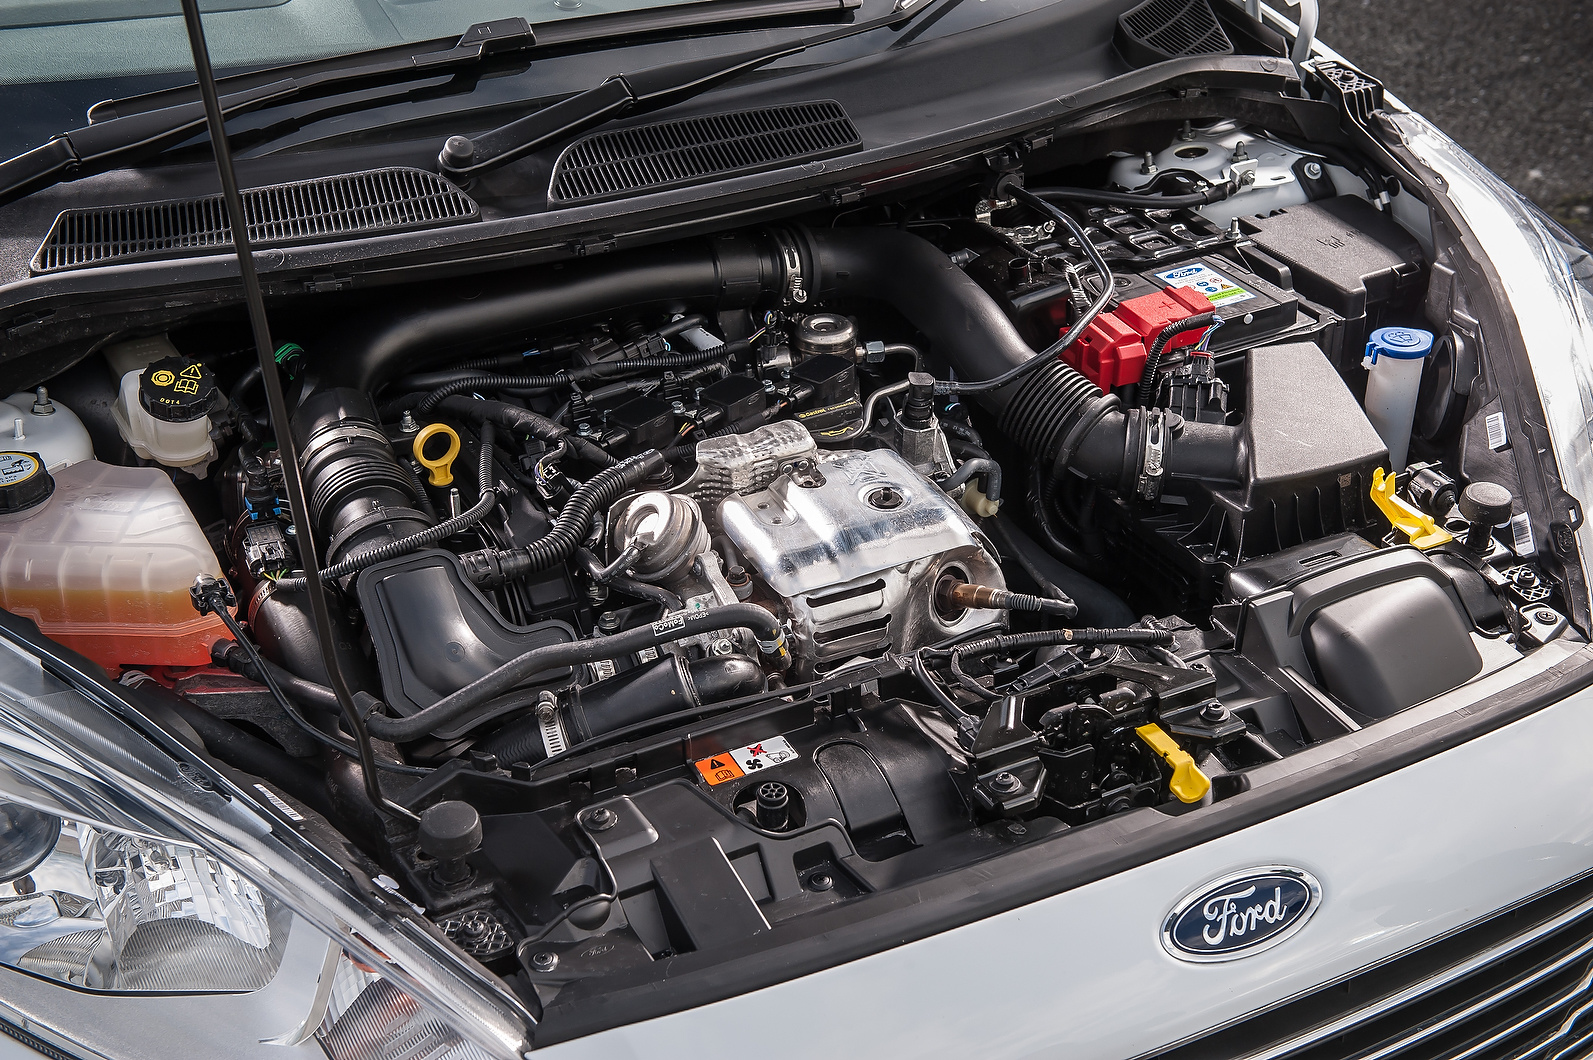 Ford Fiesta 1.6 Tdci Engine Problems Ford Fiesta 1 6 Engine Ford Free Engine Image For User